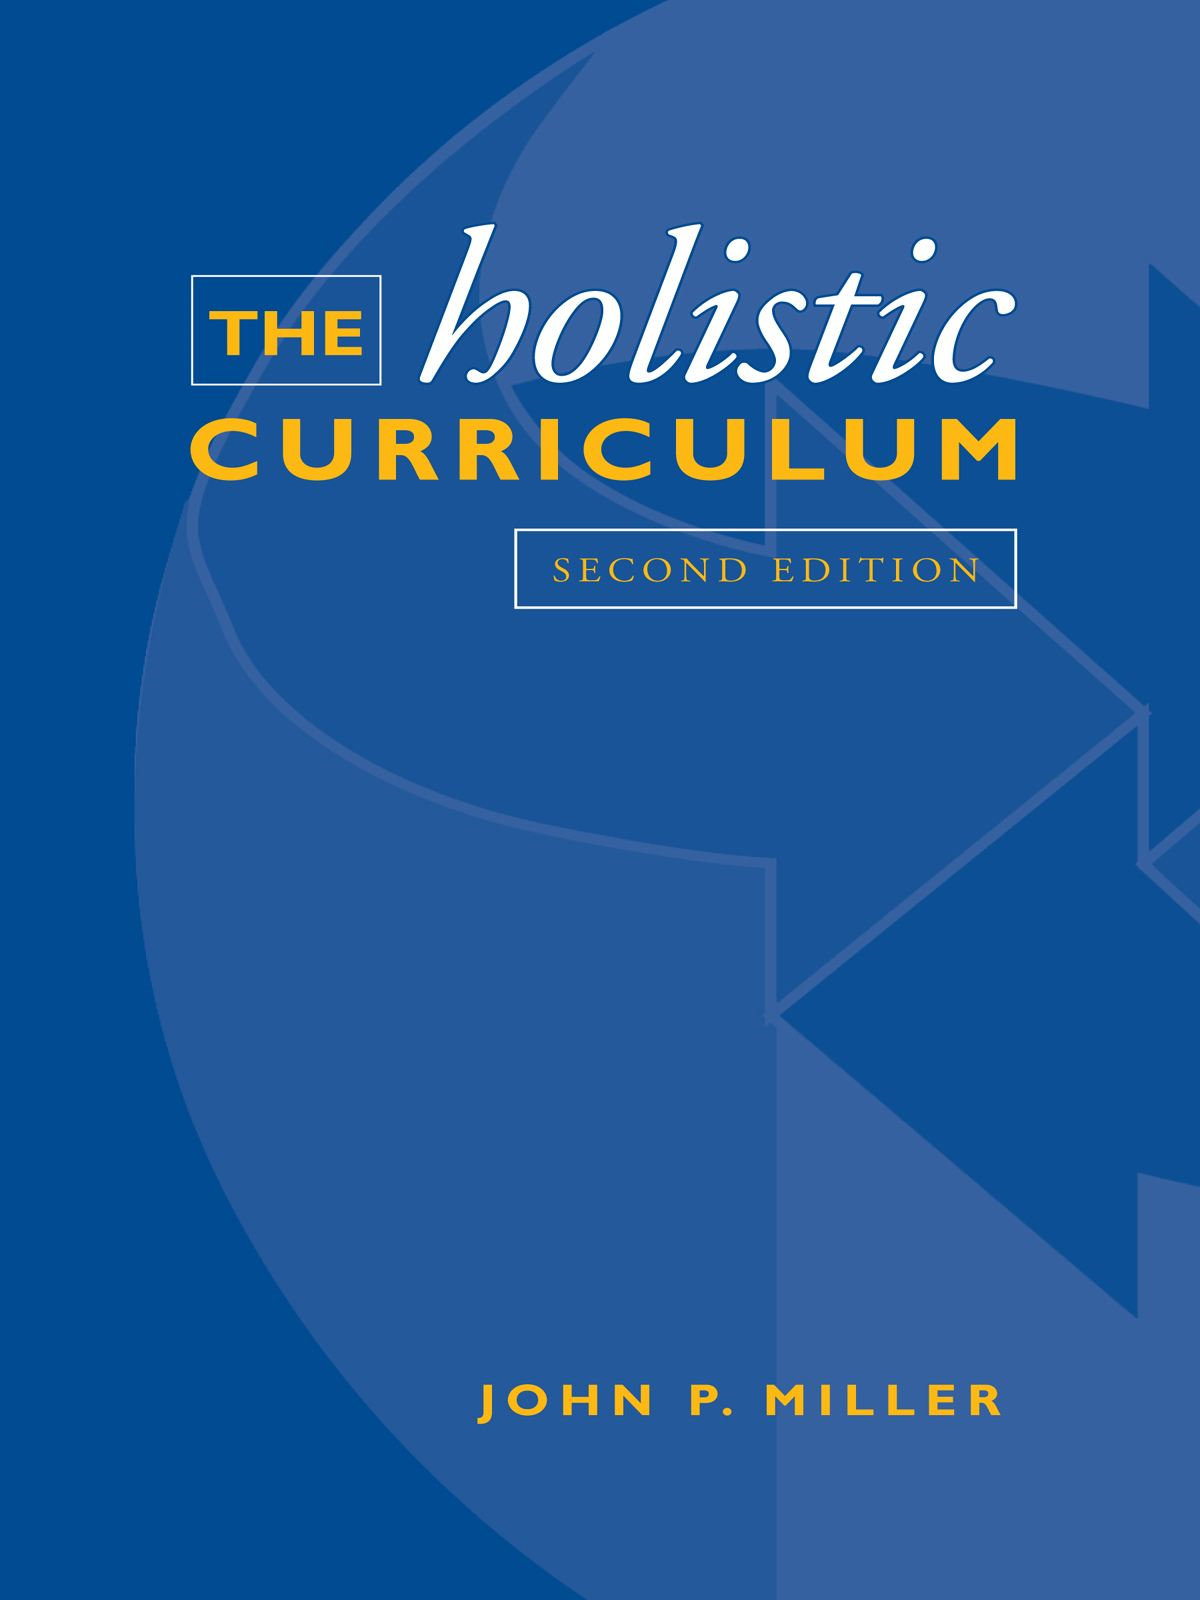 The Holistic Curriculum